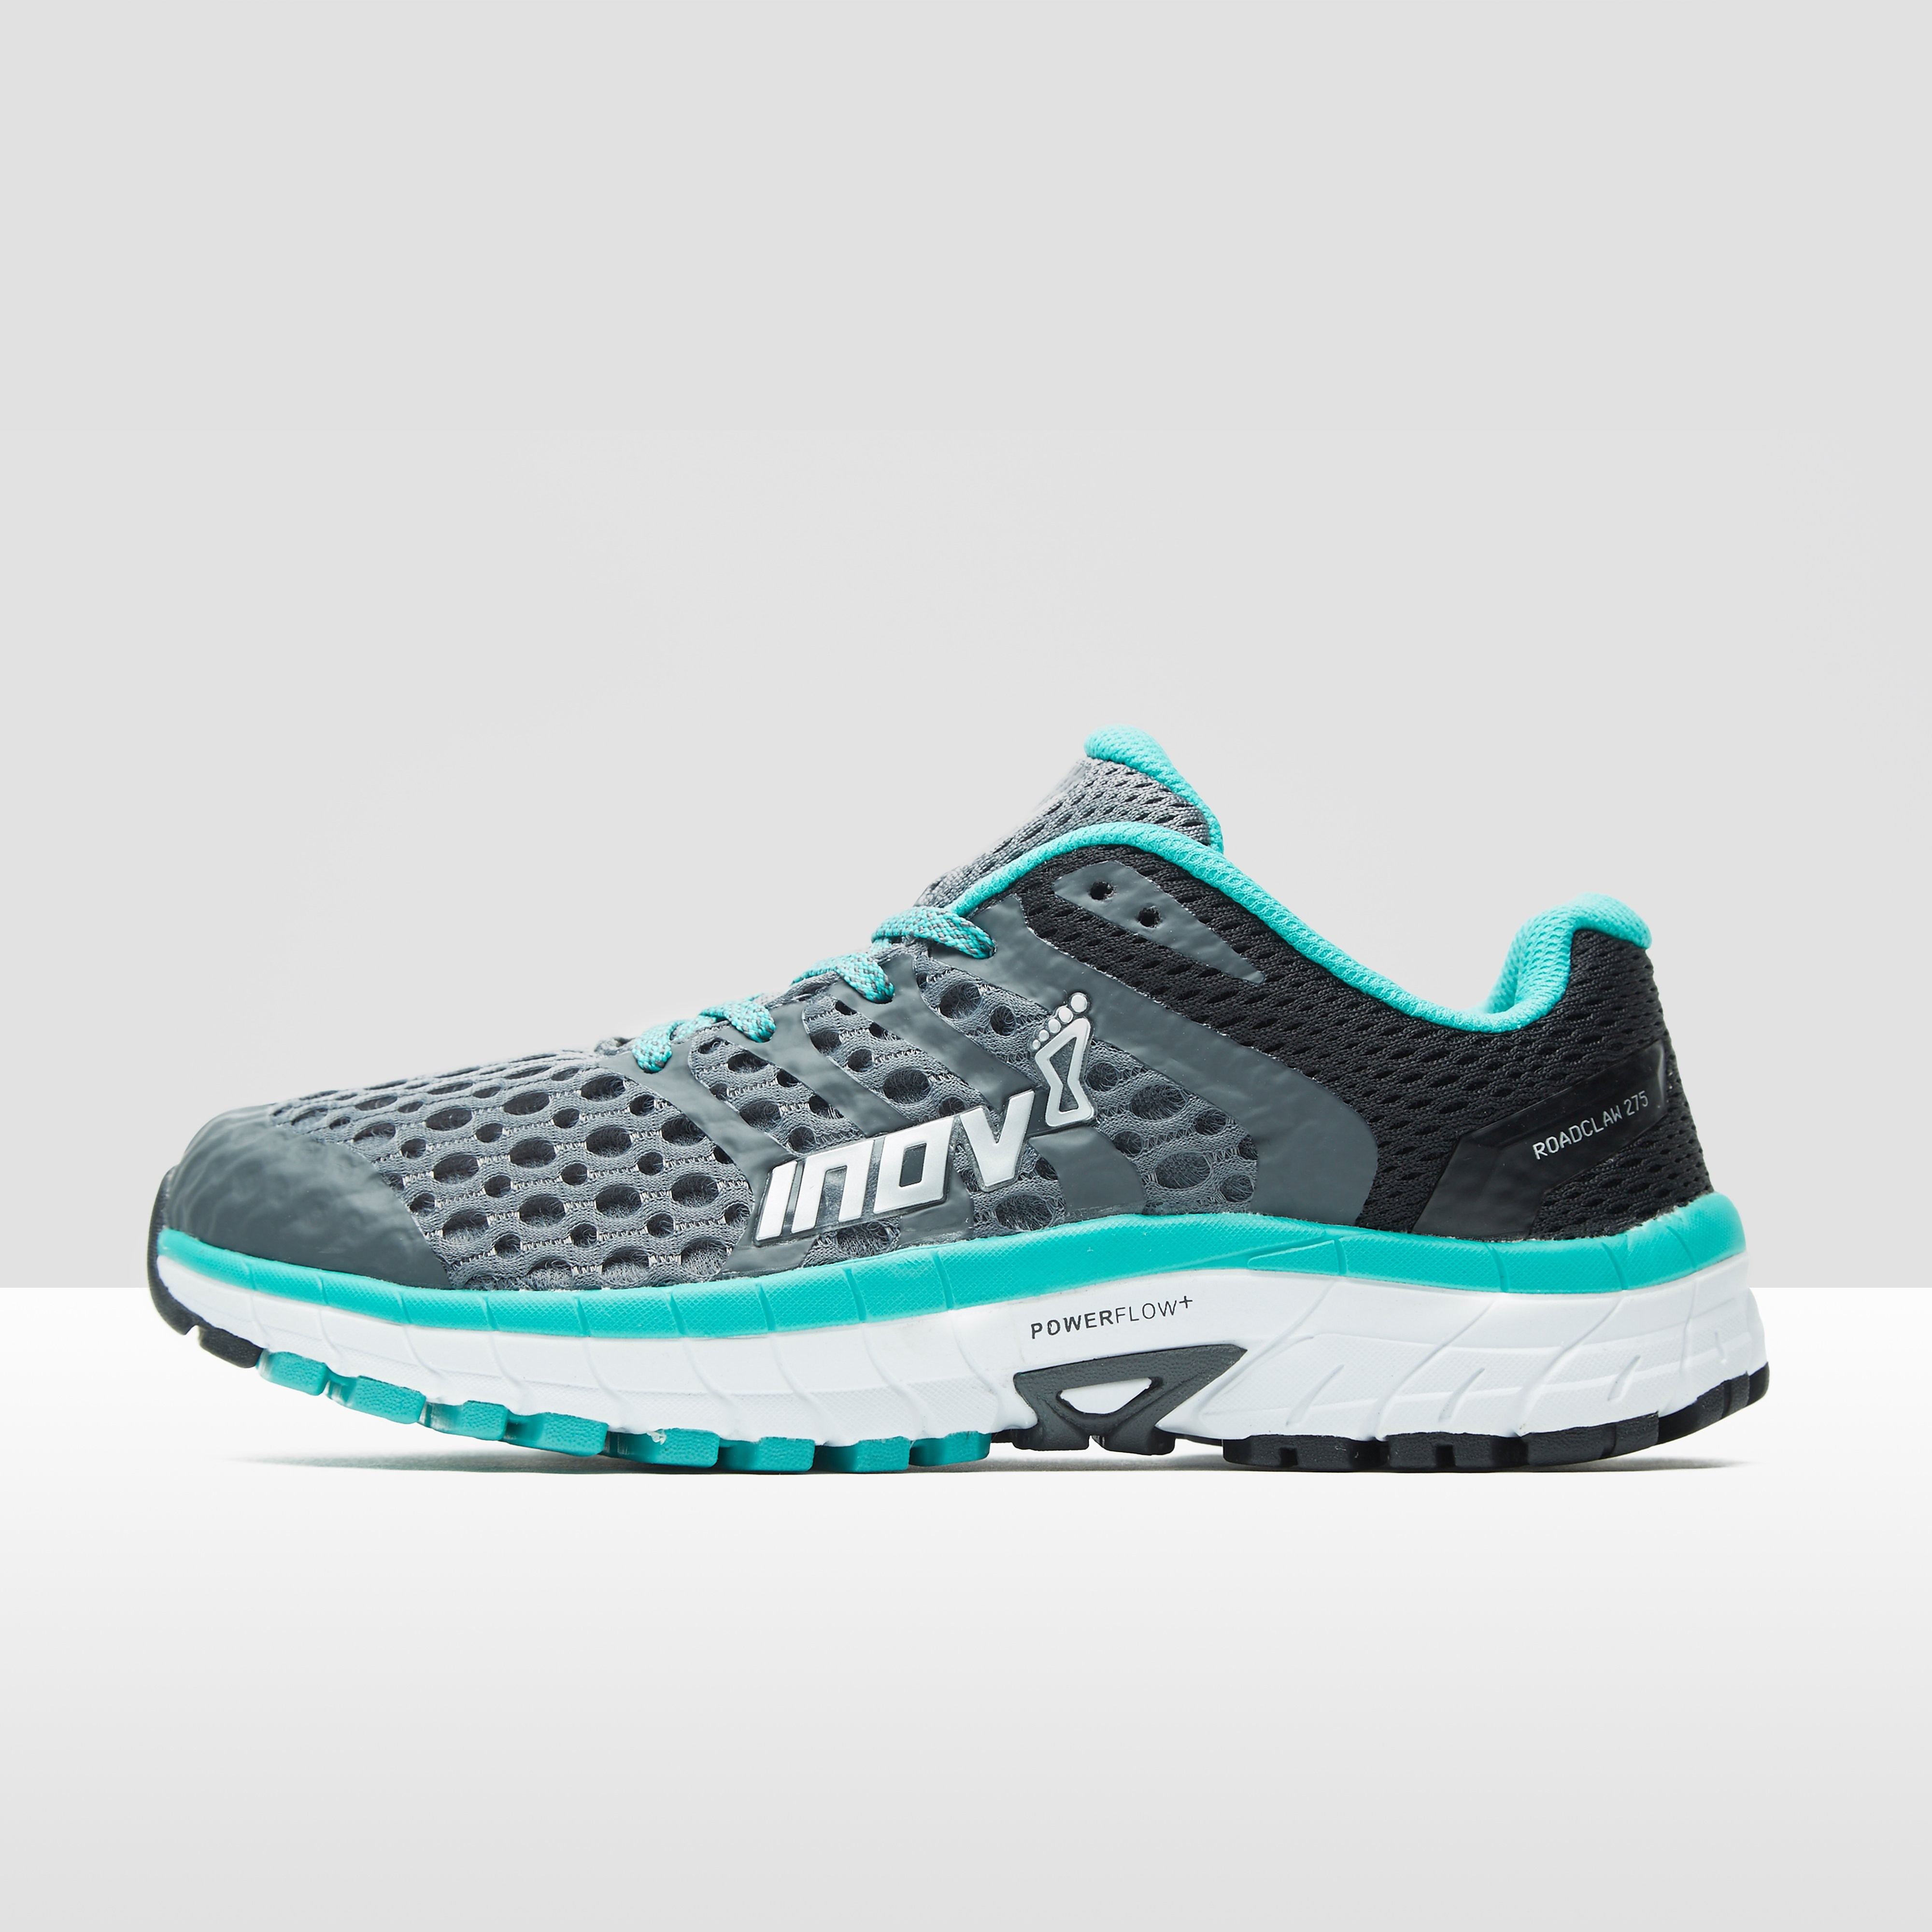 Inov-8 Roadclaw 275 V2 Women's Trail Running Shoes